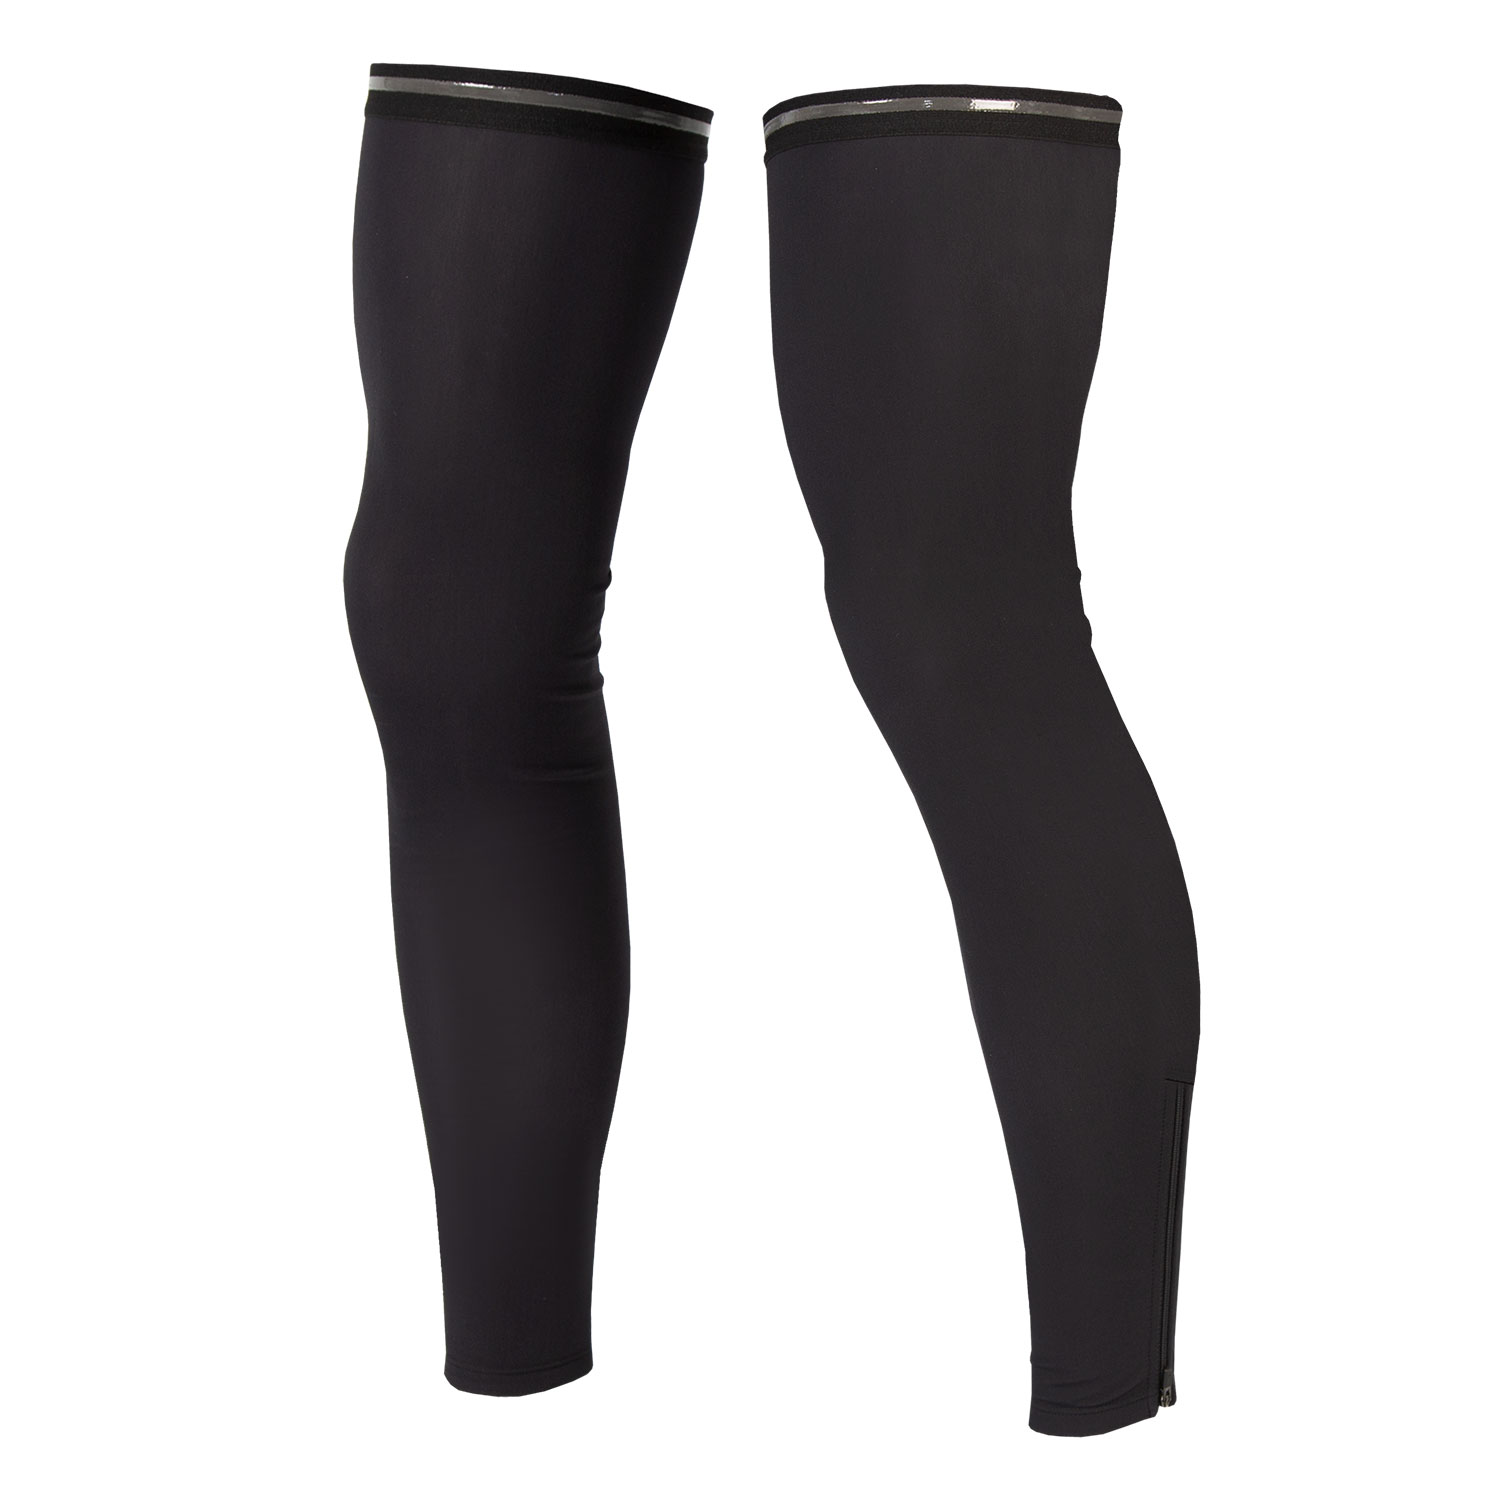 Endura FS260-Pro (S-M) Thermo Cycling Leg Warmer